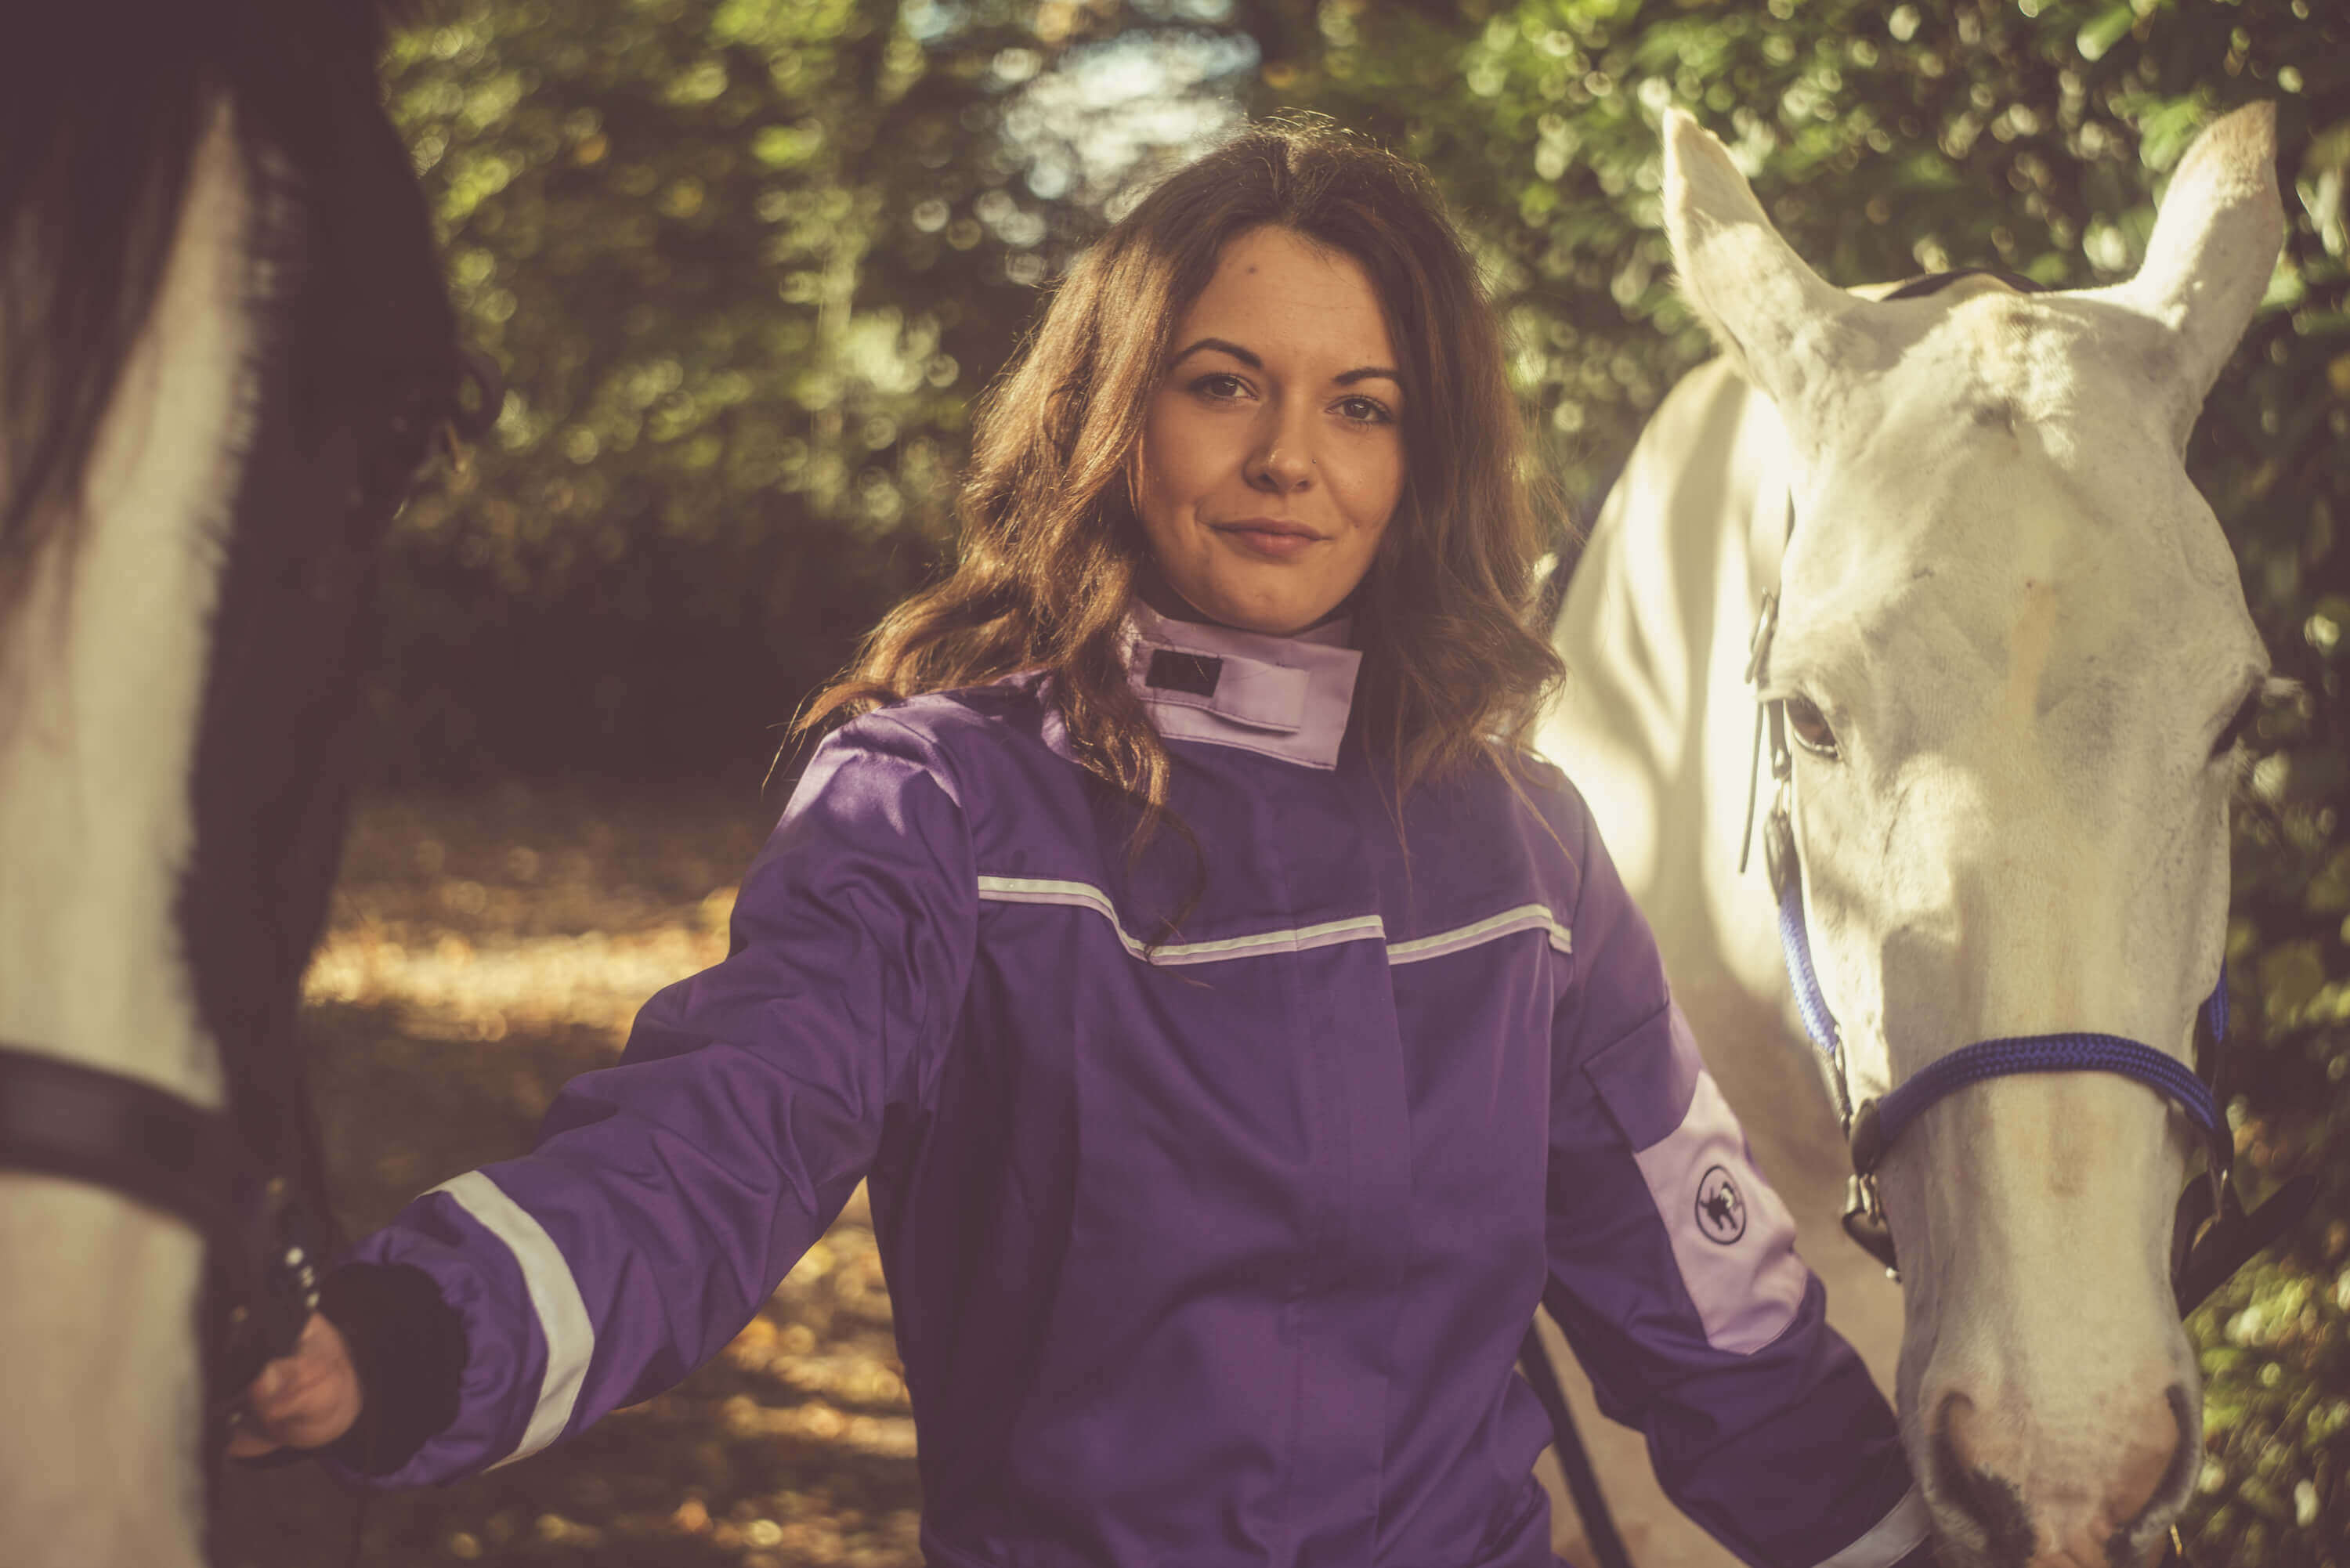 woman-in-purple-coverall-holding-a-horse-and-a-white-horse-on-its-side